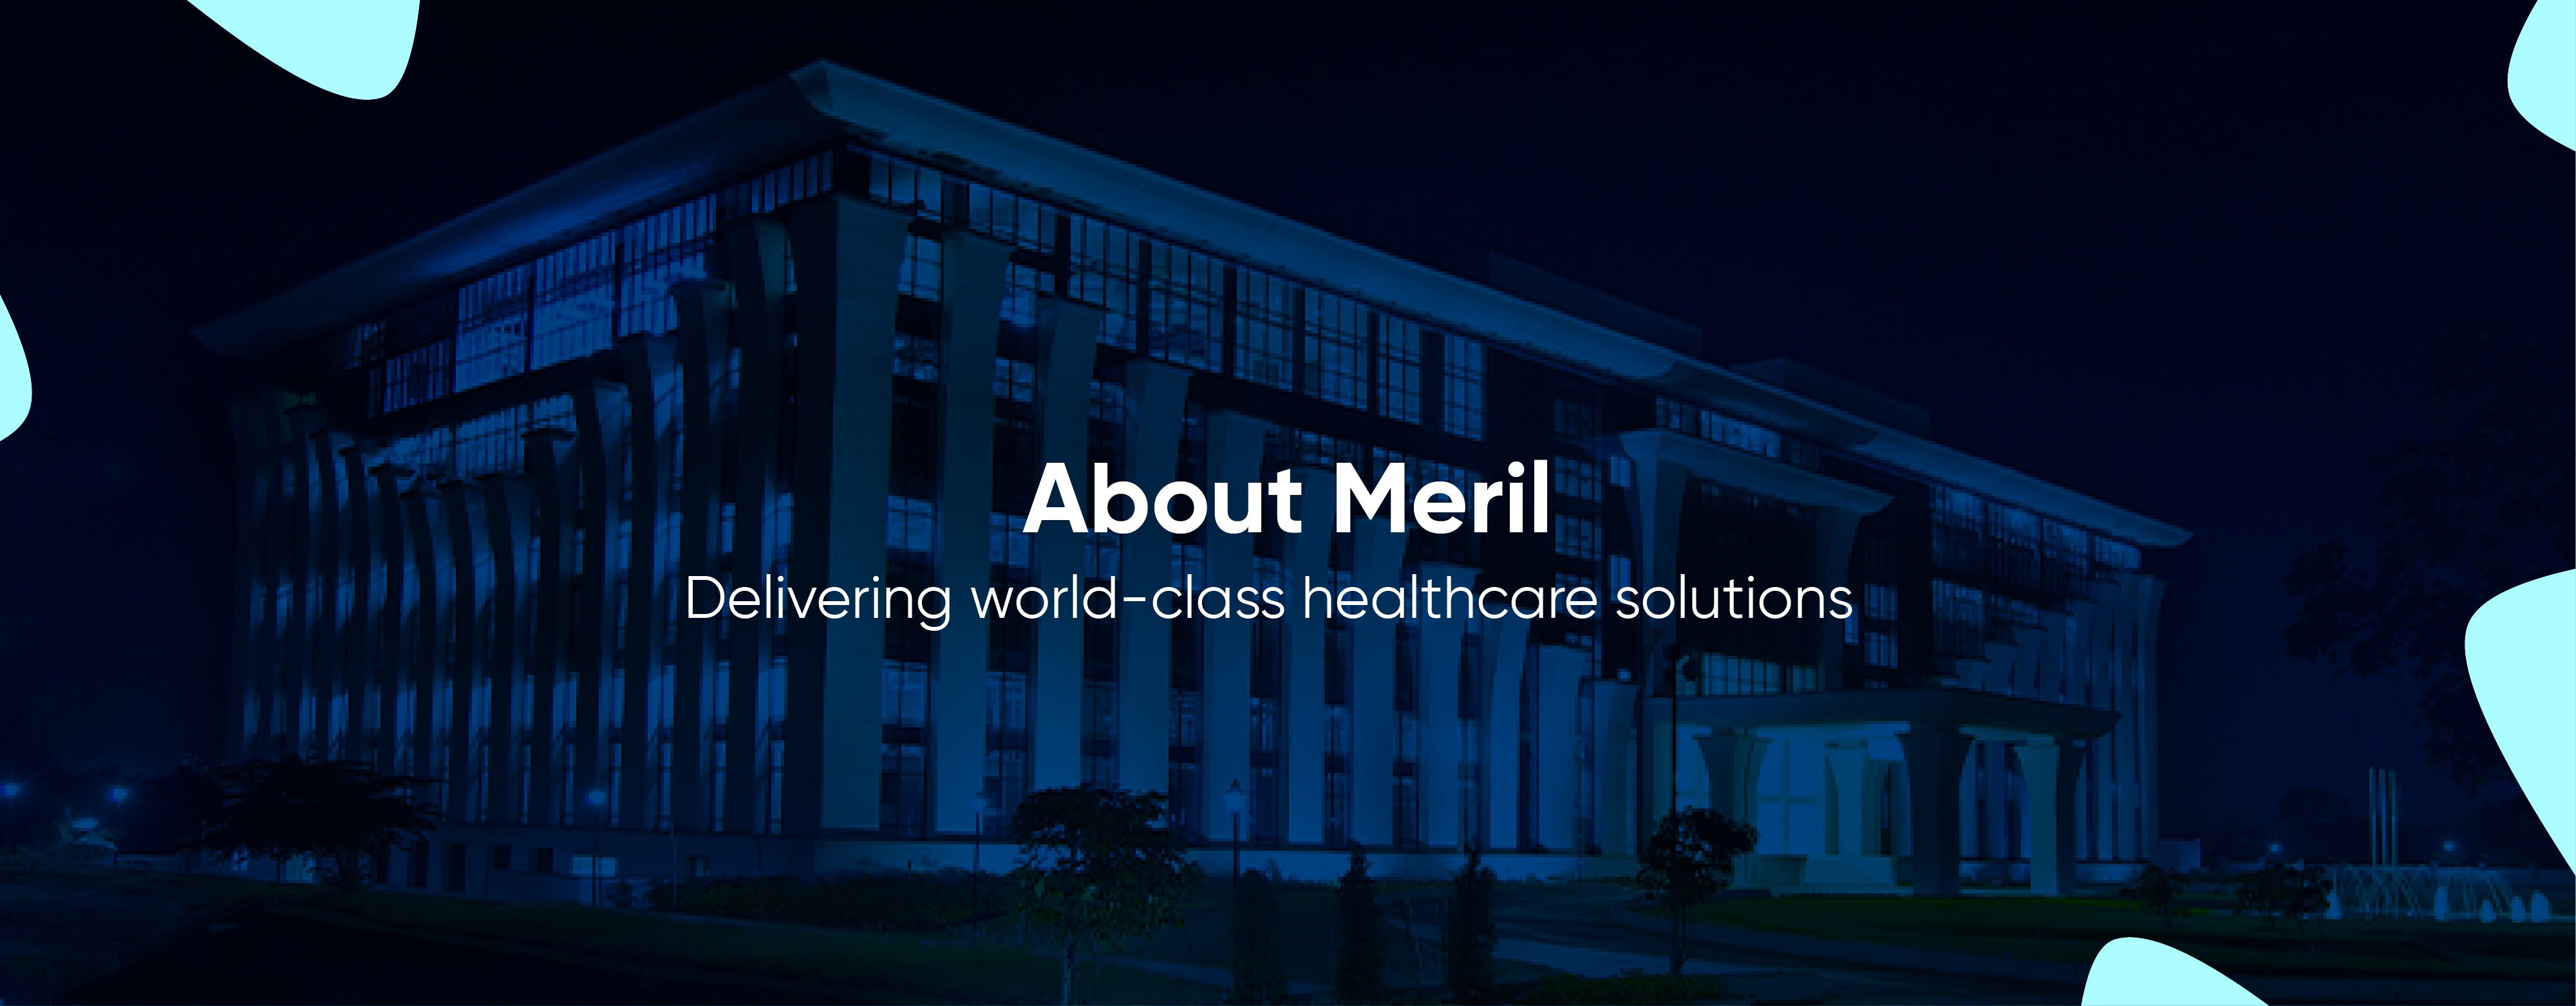 DELIVERING WORLD-CLASS HEALTHCARE SOLUTIONS